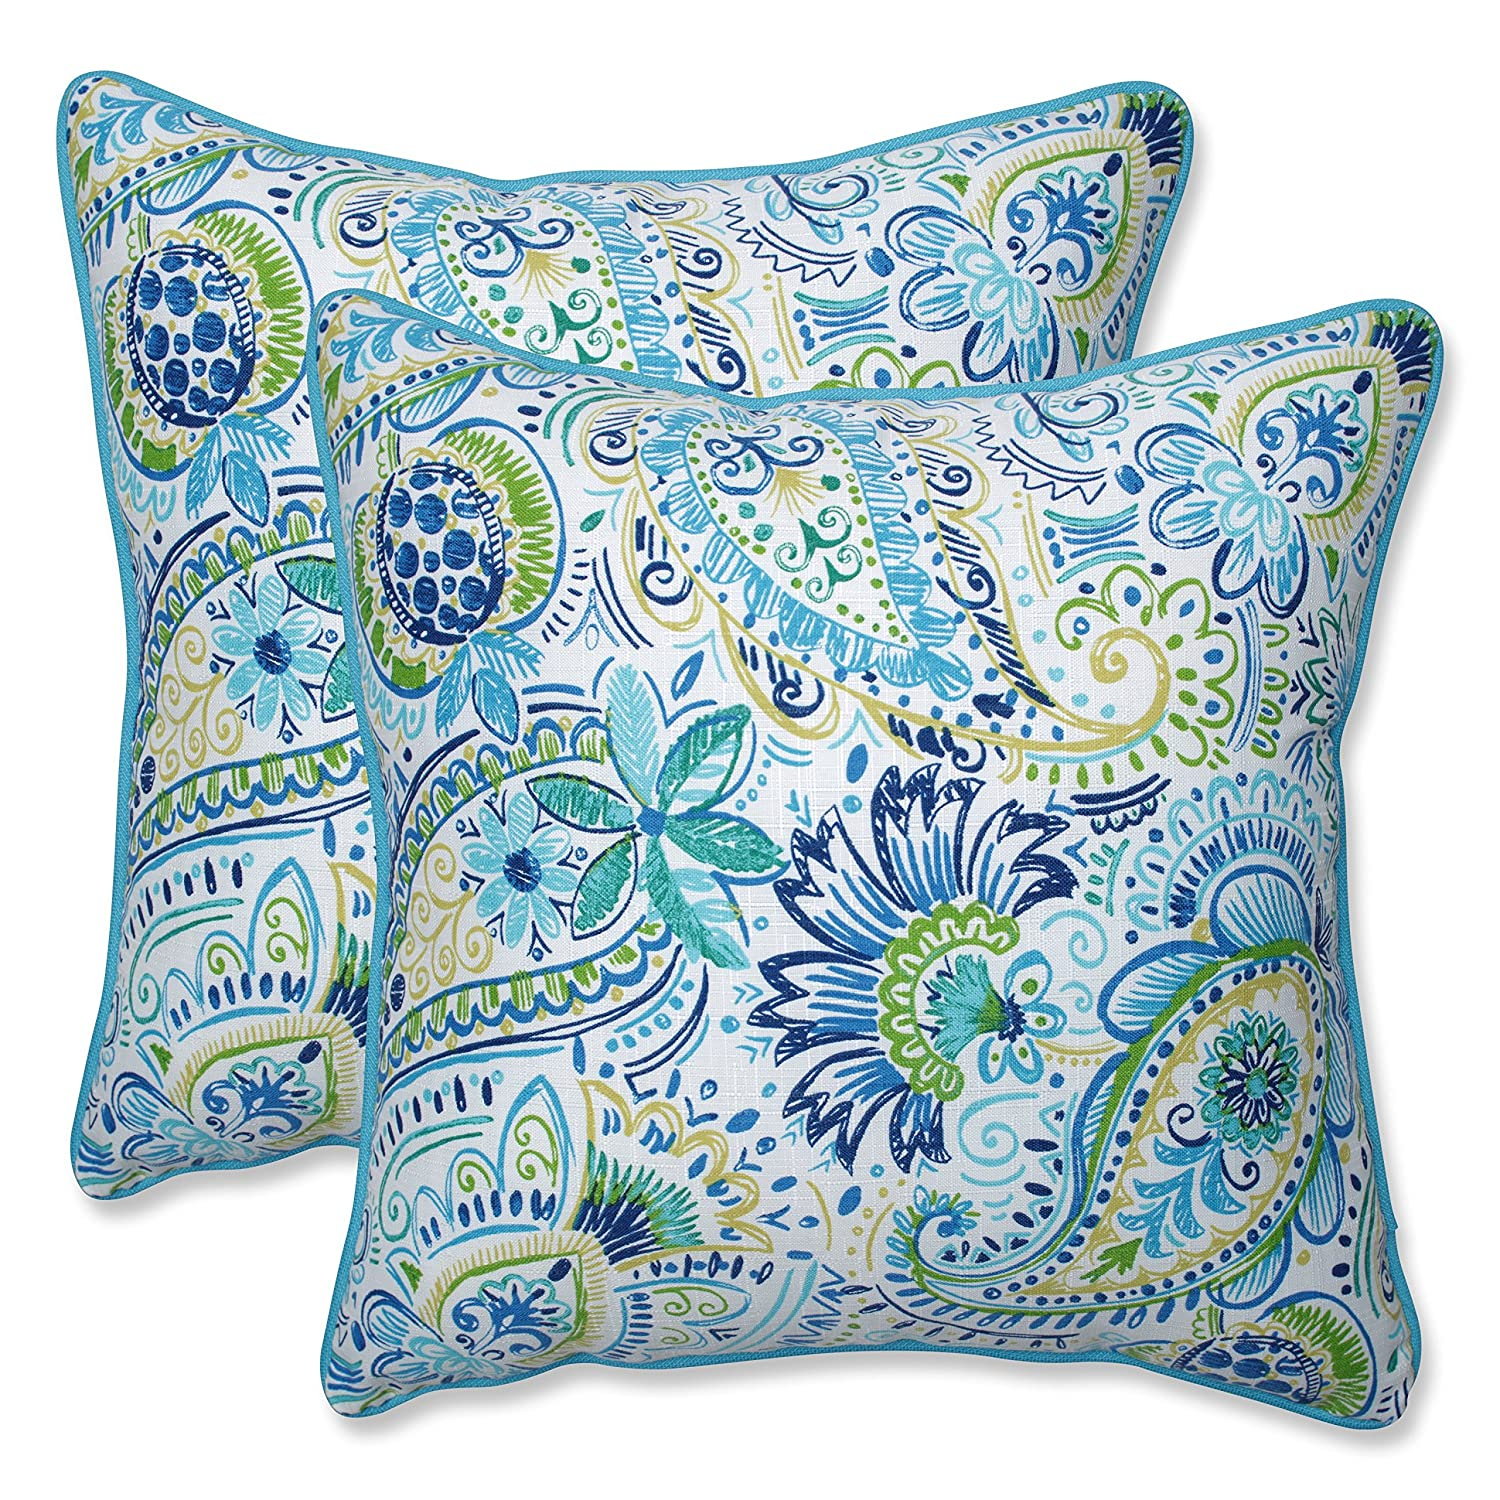 Pillow Perfect Outdoor Indoor Gilford Baltic 18.5-inch Throw Pillow Set of 2 , 2 Piece